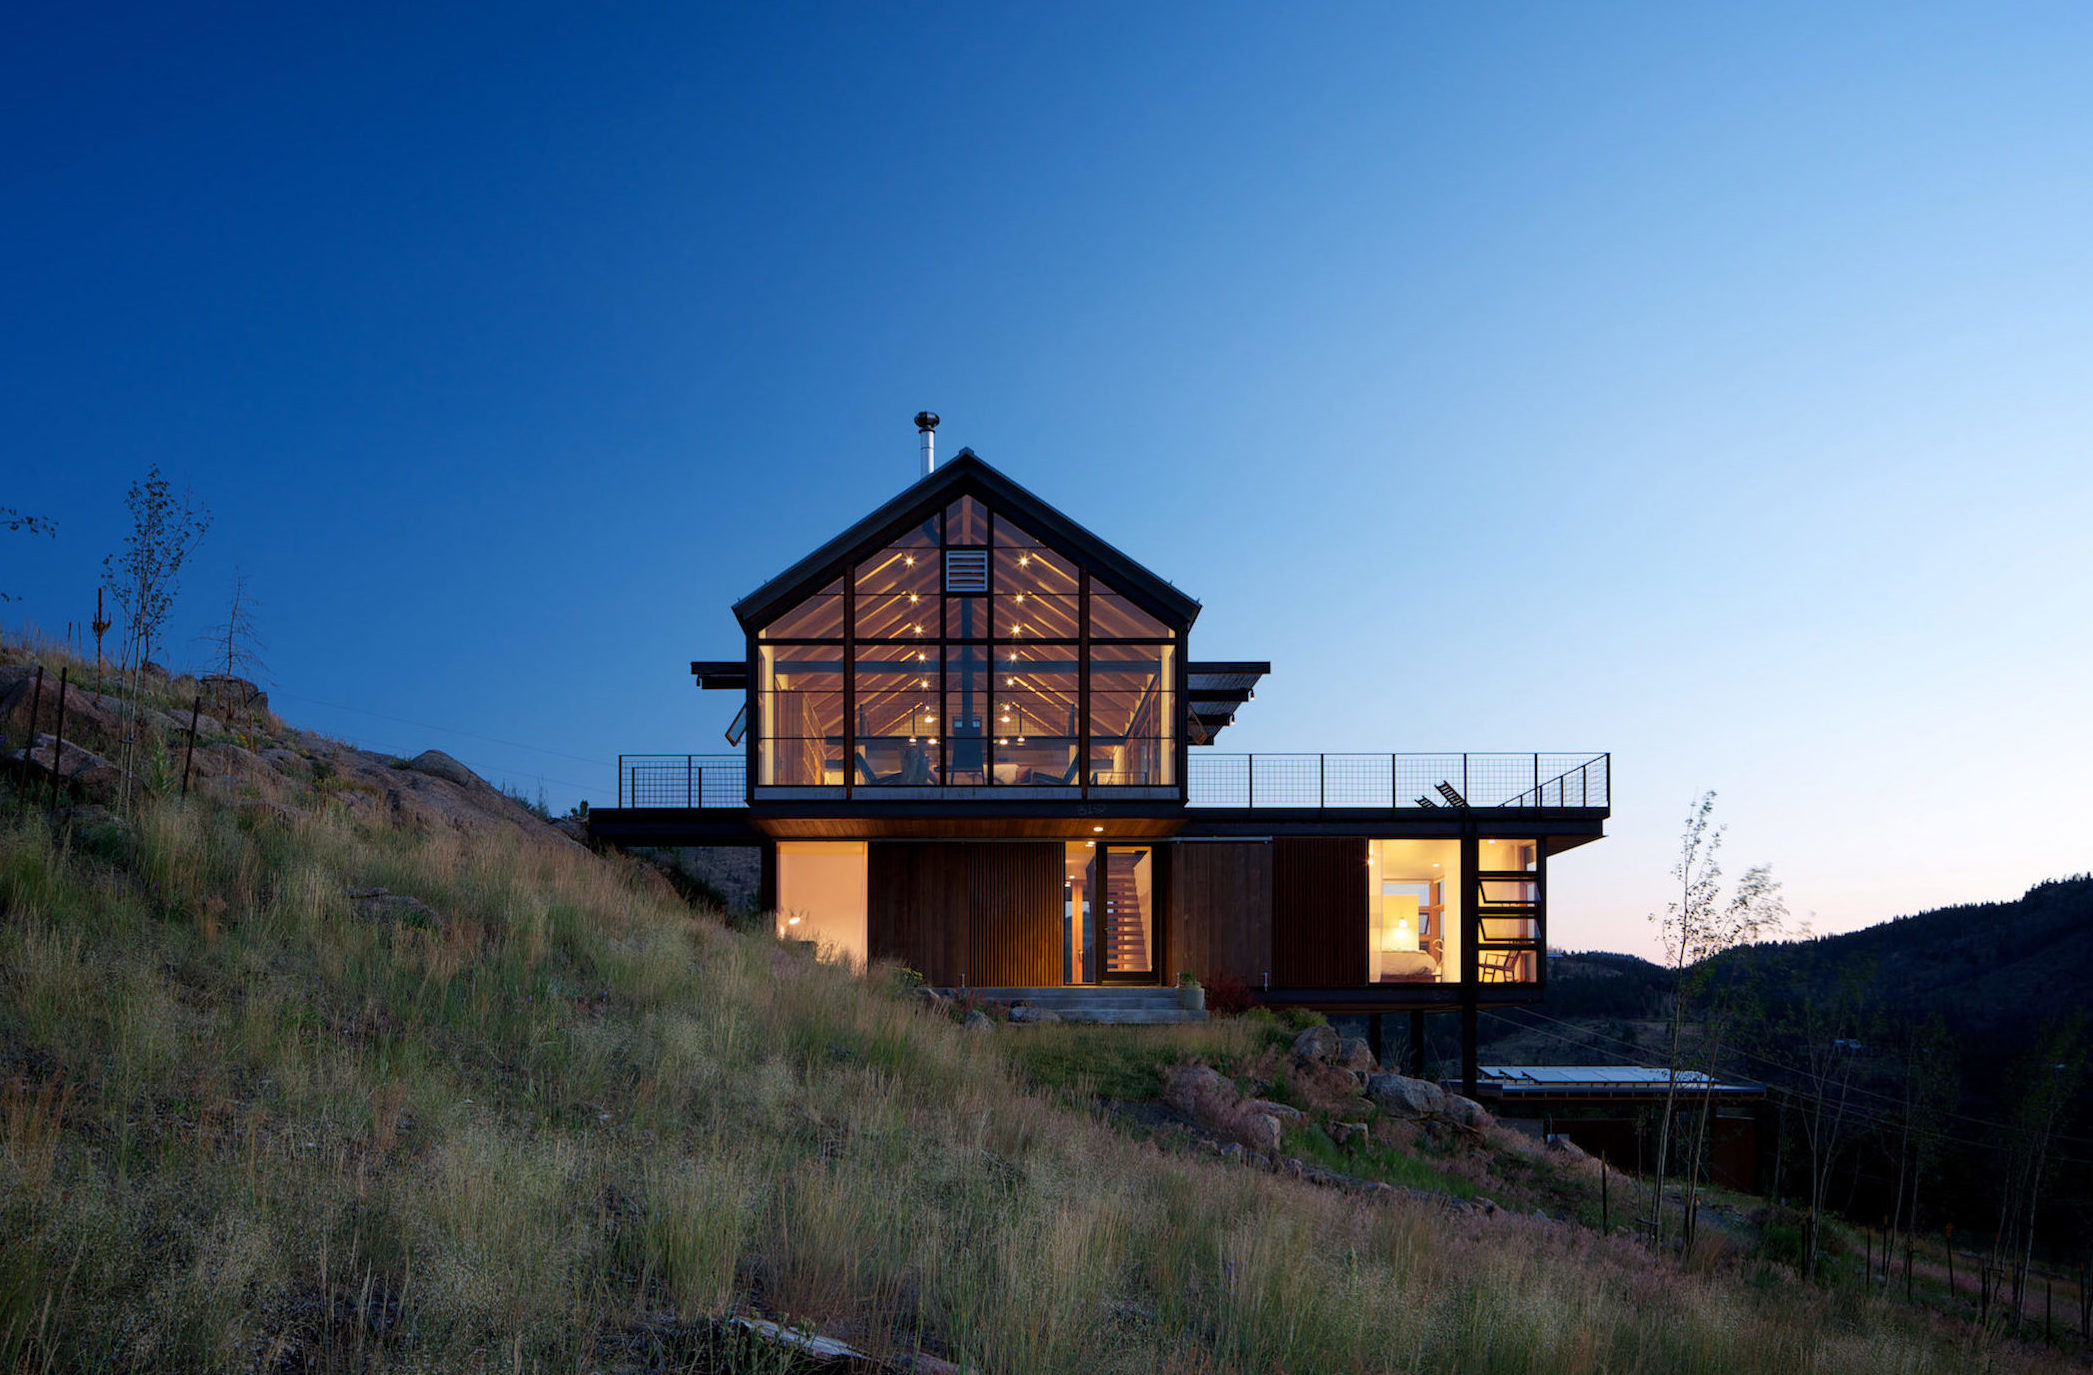 Twilight at Sunshine Canyon House by Renée del Gaudio Architecture.